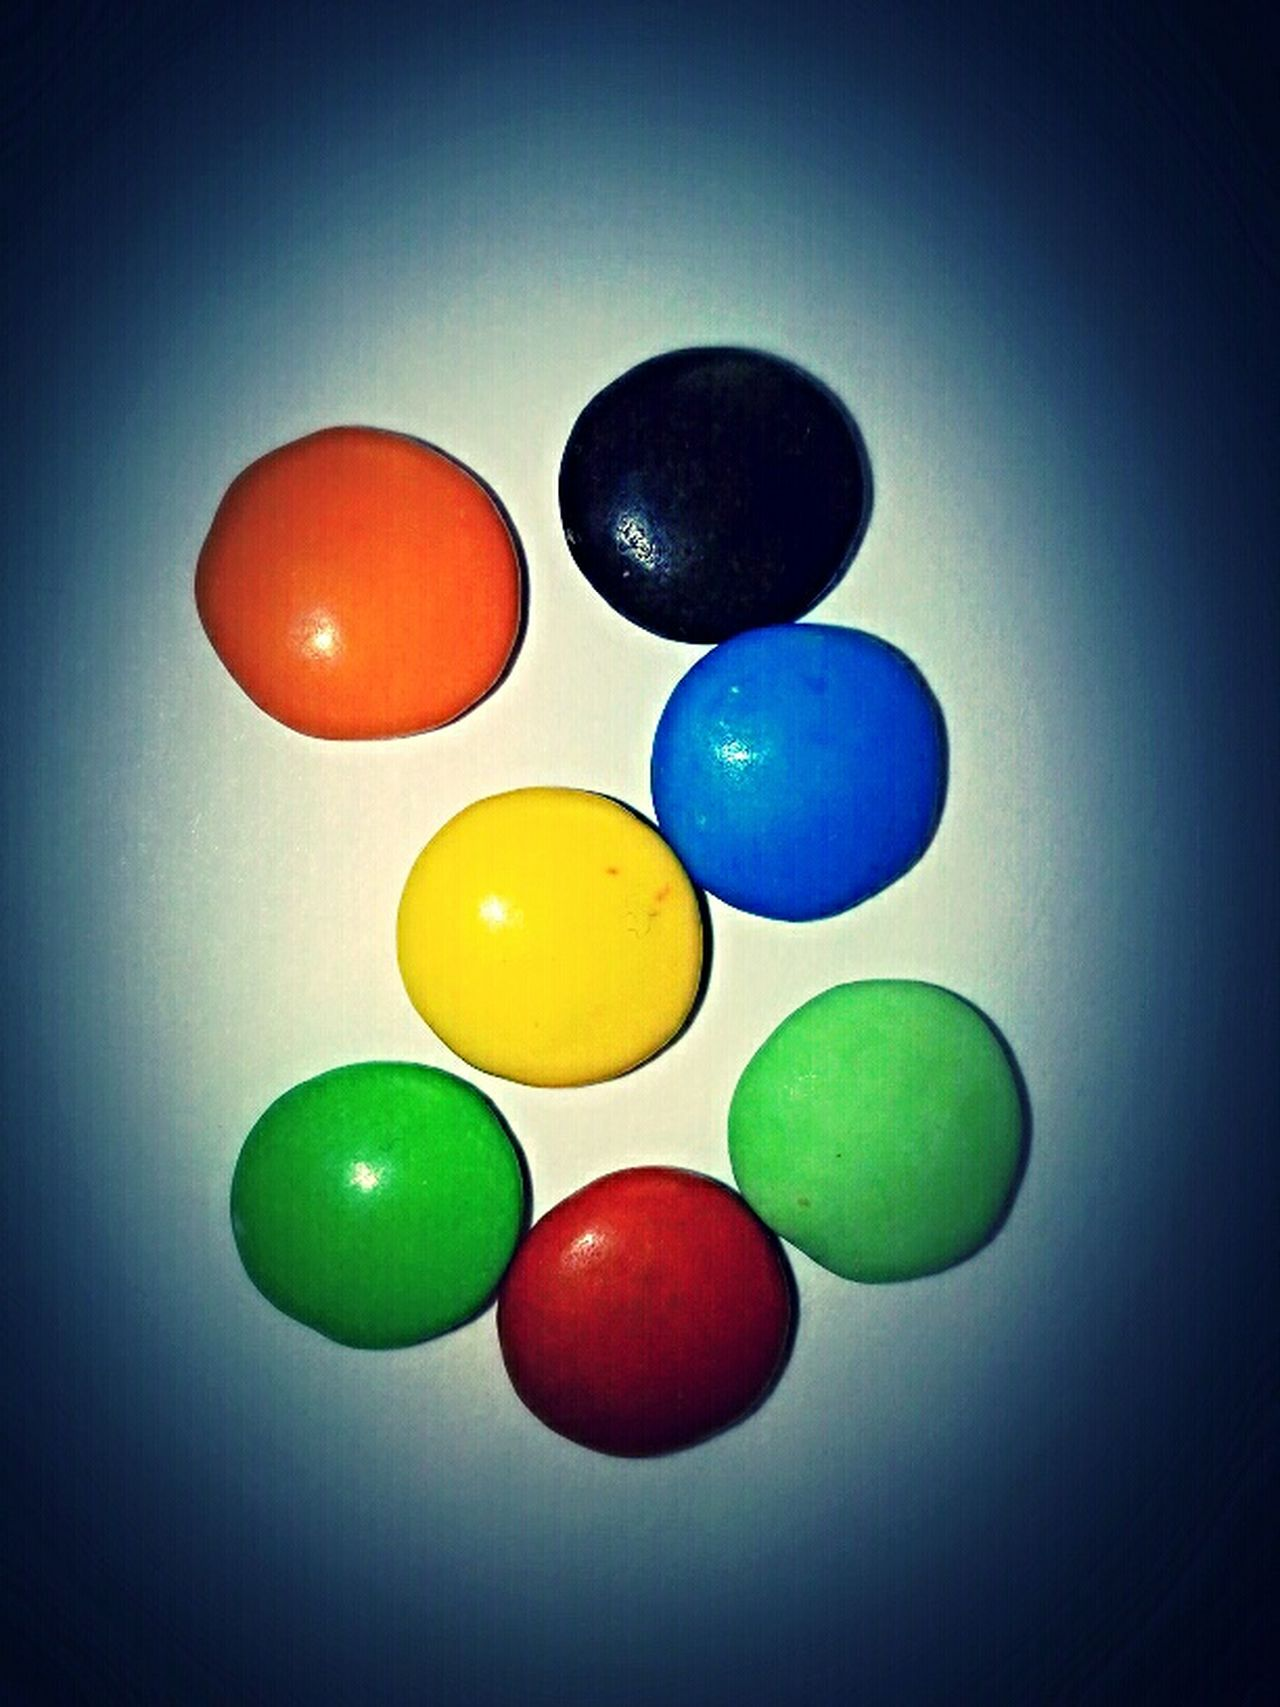 Rocklets Closer Photografie Candy Visual Feast